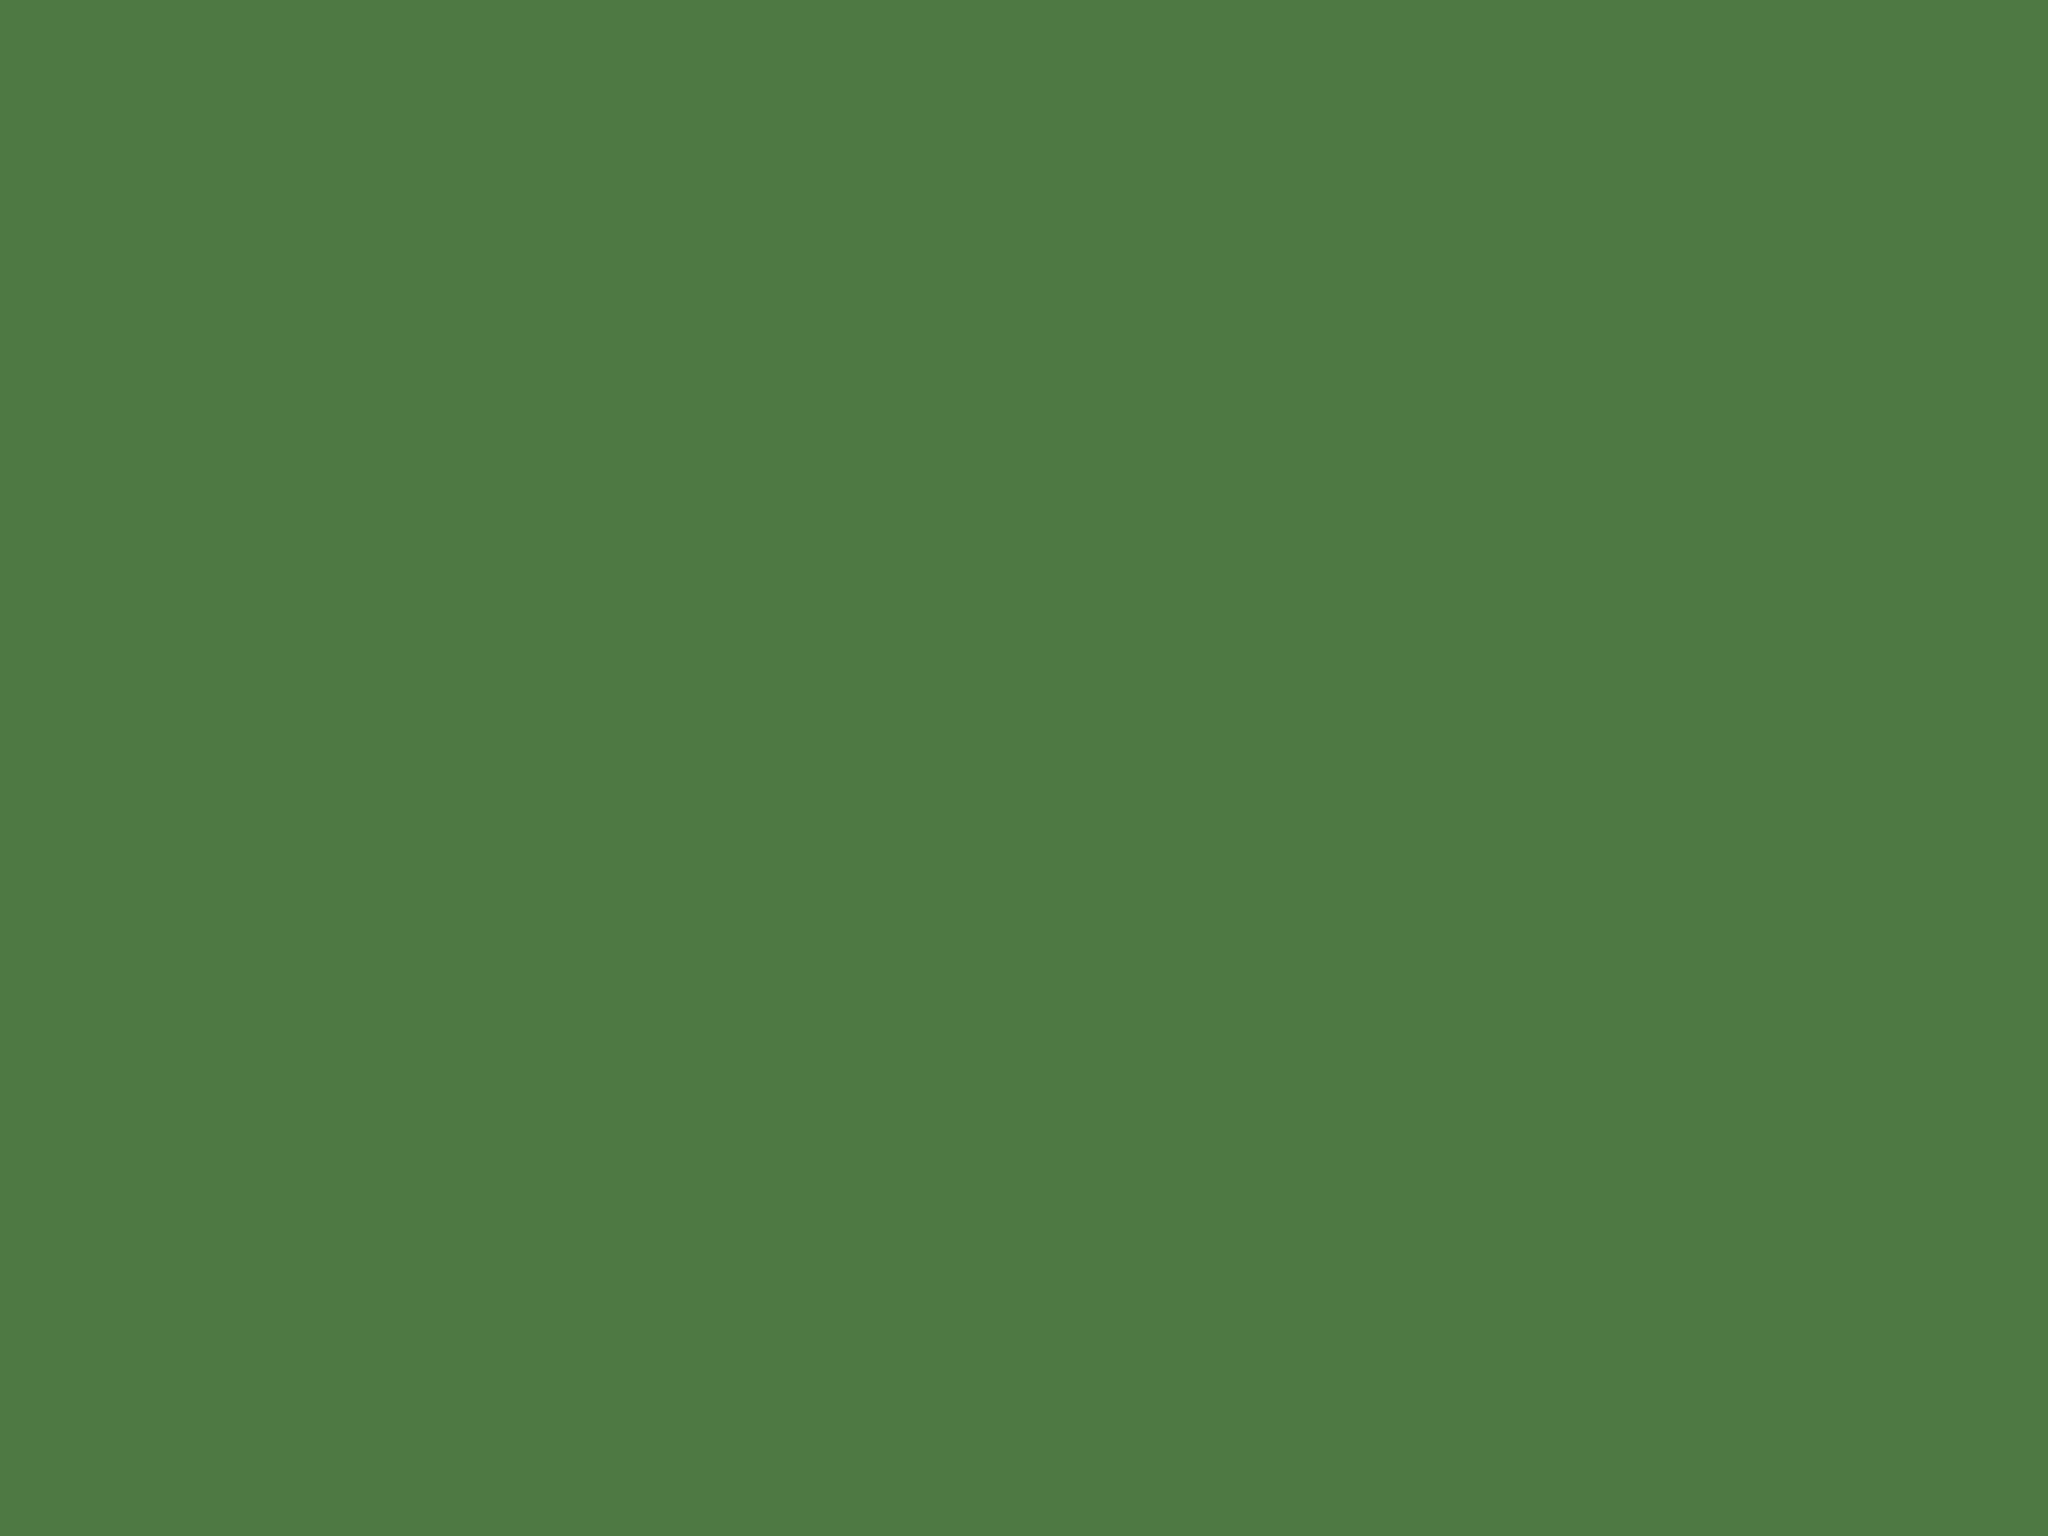 2048x1536 Fern Green Solid Color Background